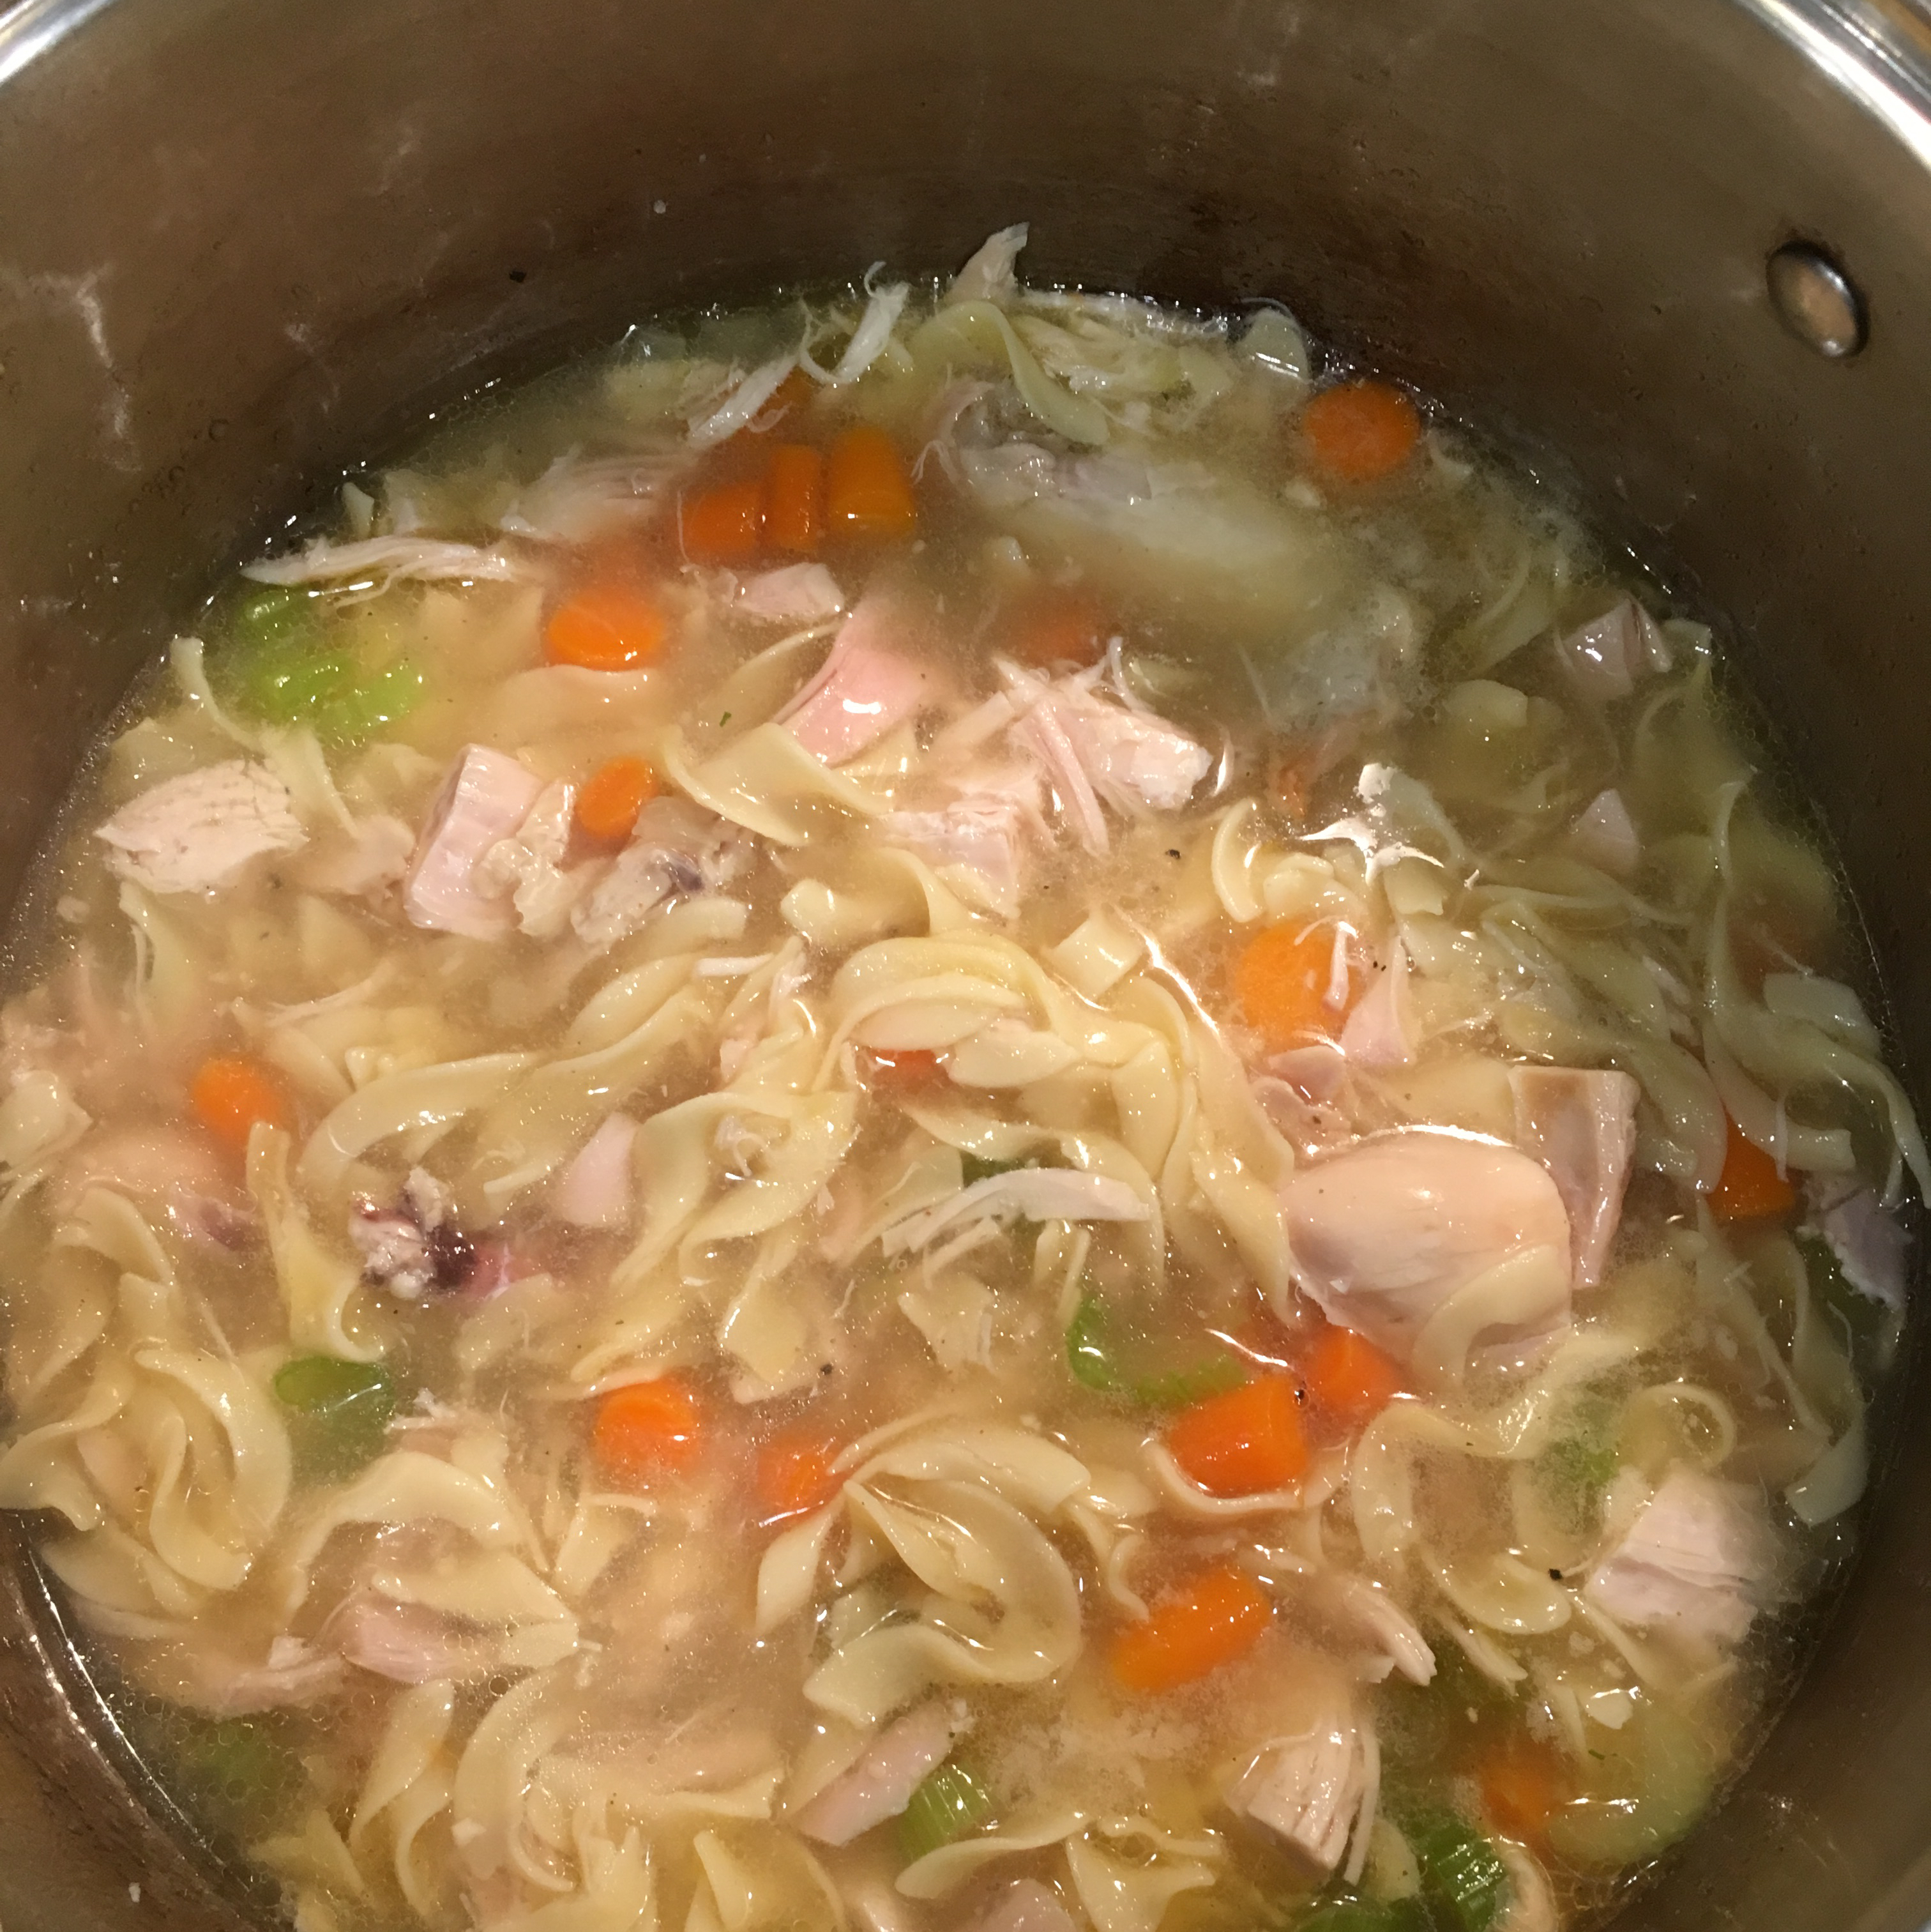 Grandma's Chicken Noodle Soup liztep